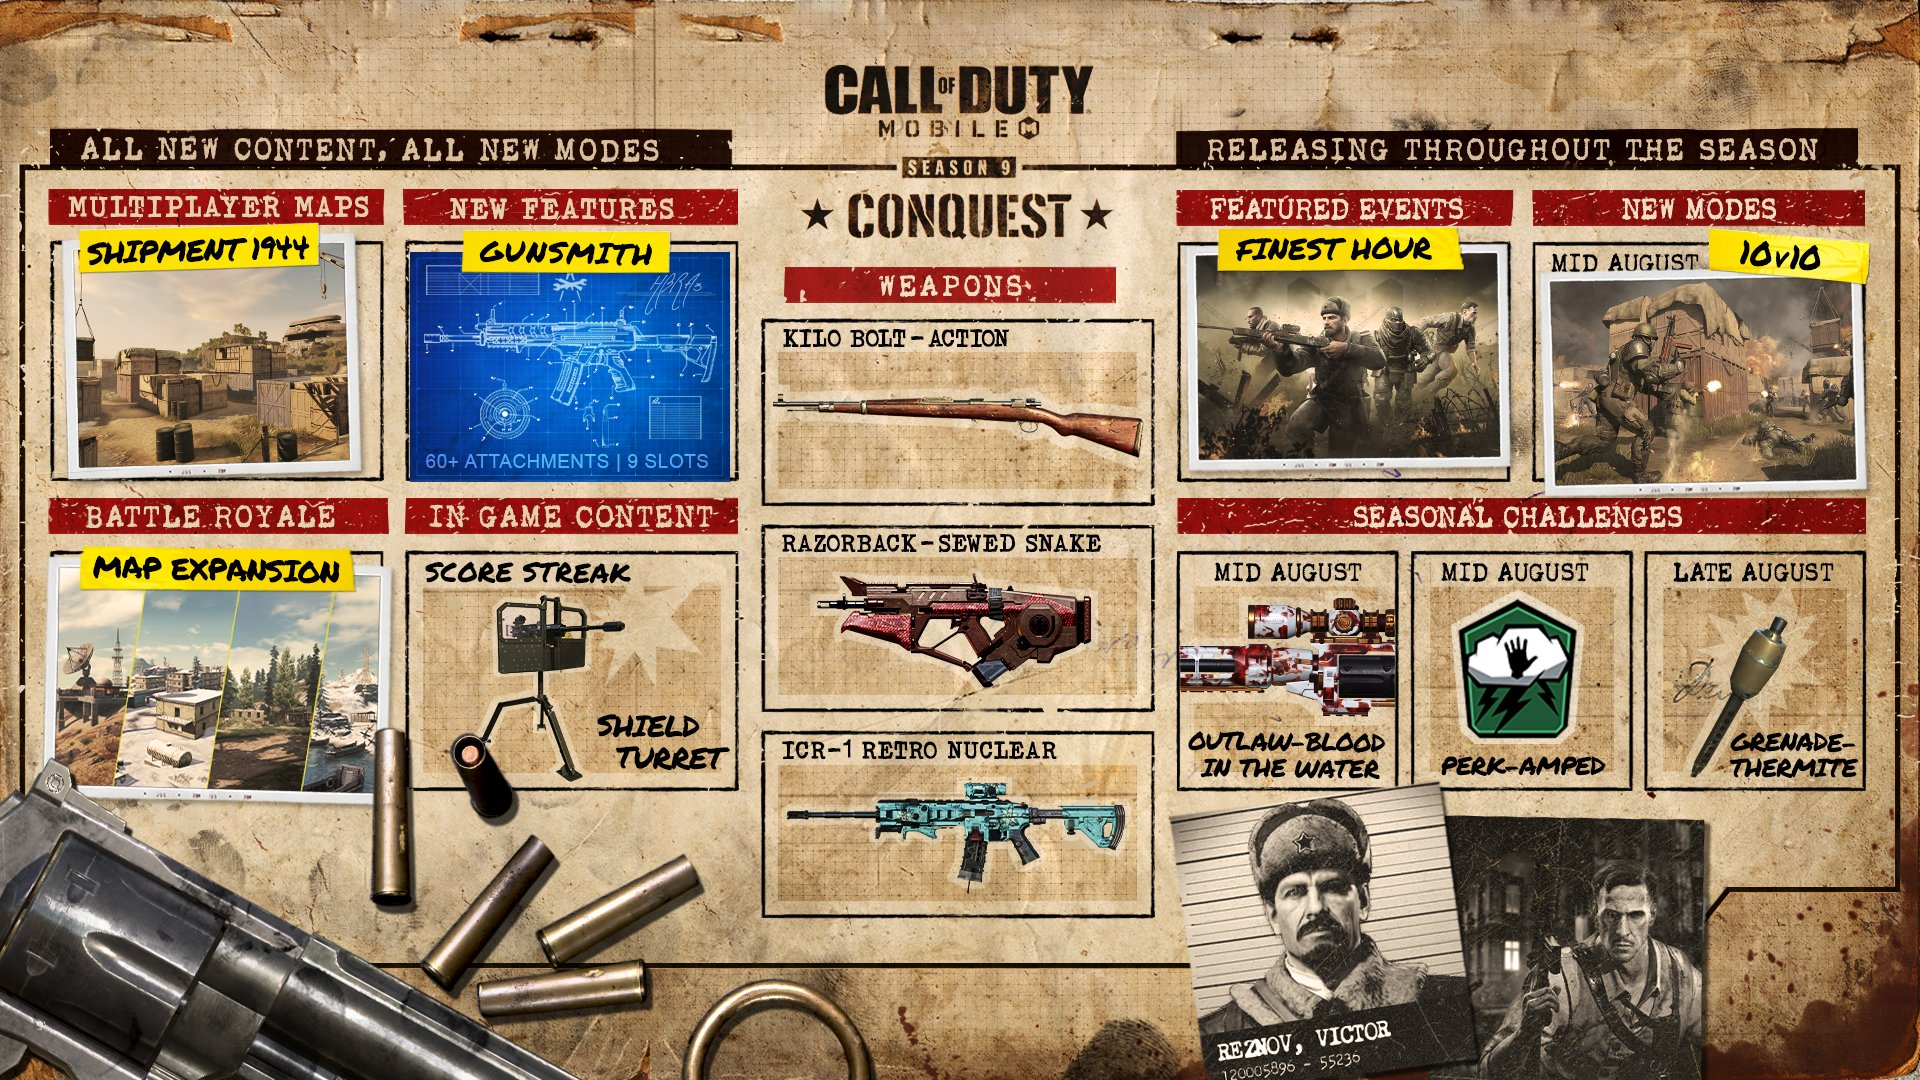 Call of Duty Mobile Saison 9, Call of Duty Conquest, Cartes Call of Duty Mobile Saison 9, Cod Mobile BR, Notes de mise à jour de Call of Duty Saison 9, Notes de mise à jour de Cod Mobile Conquest